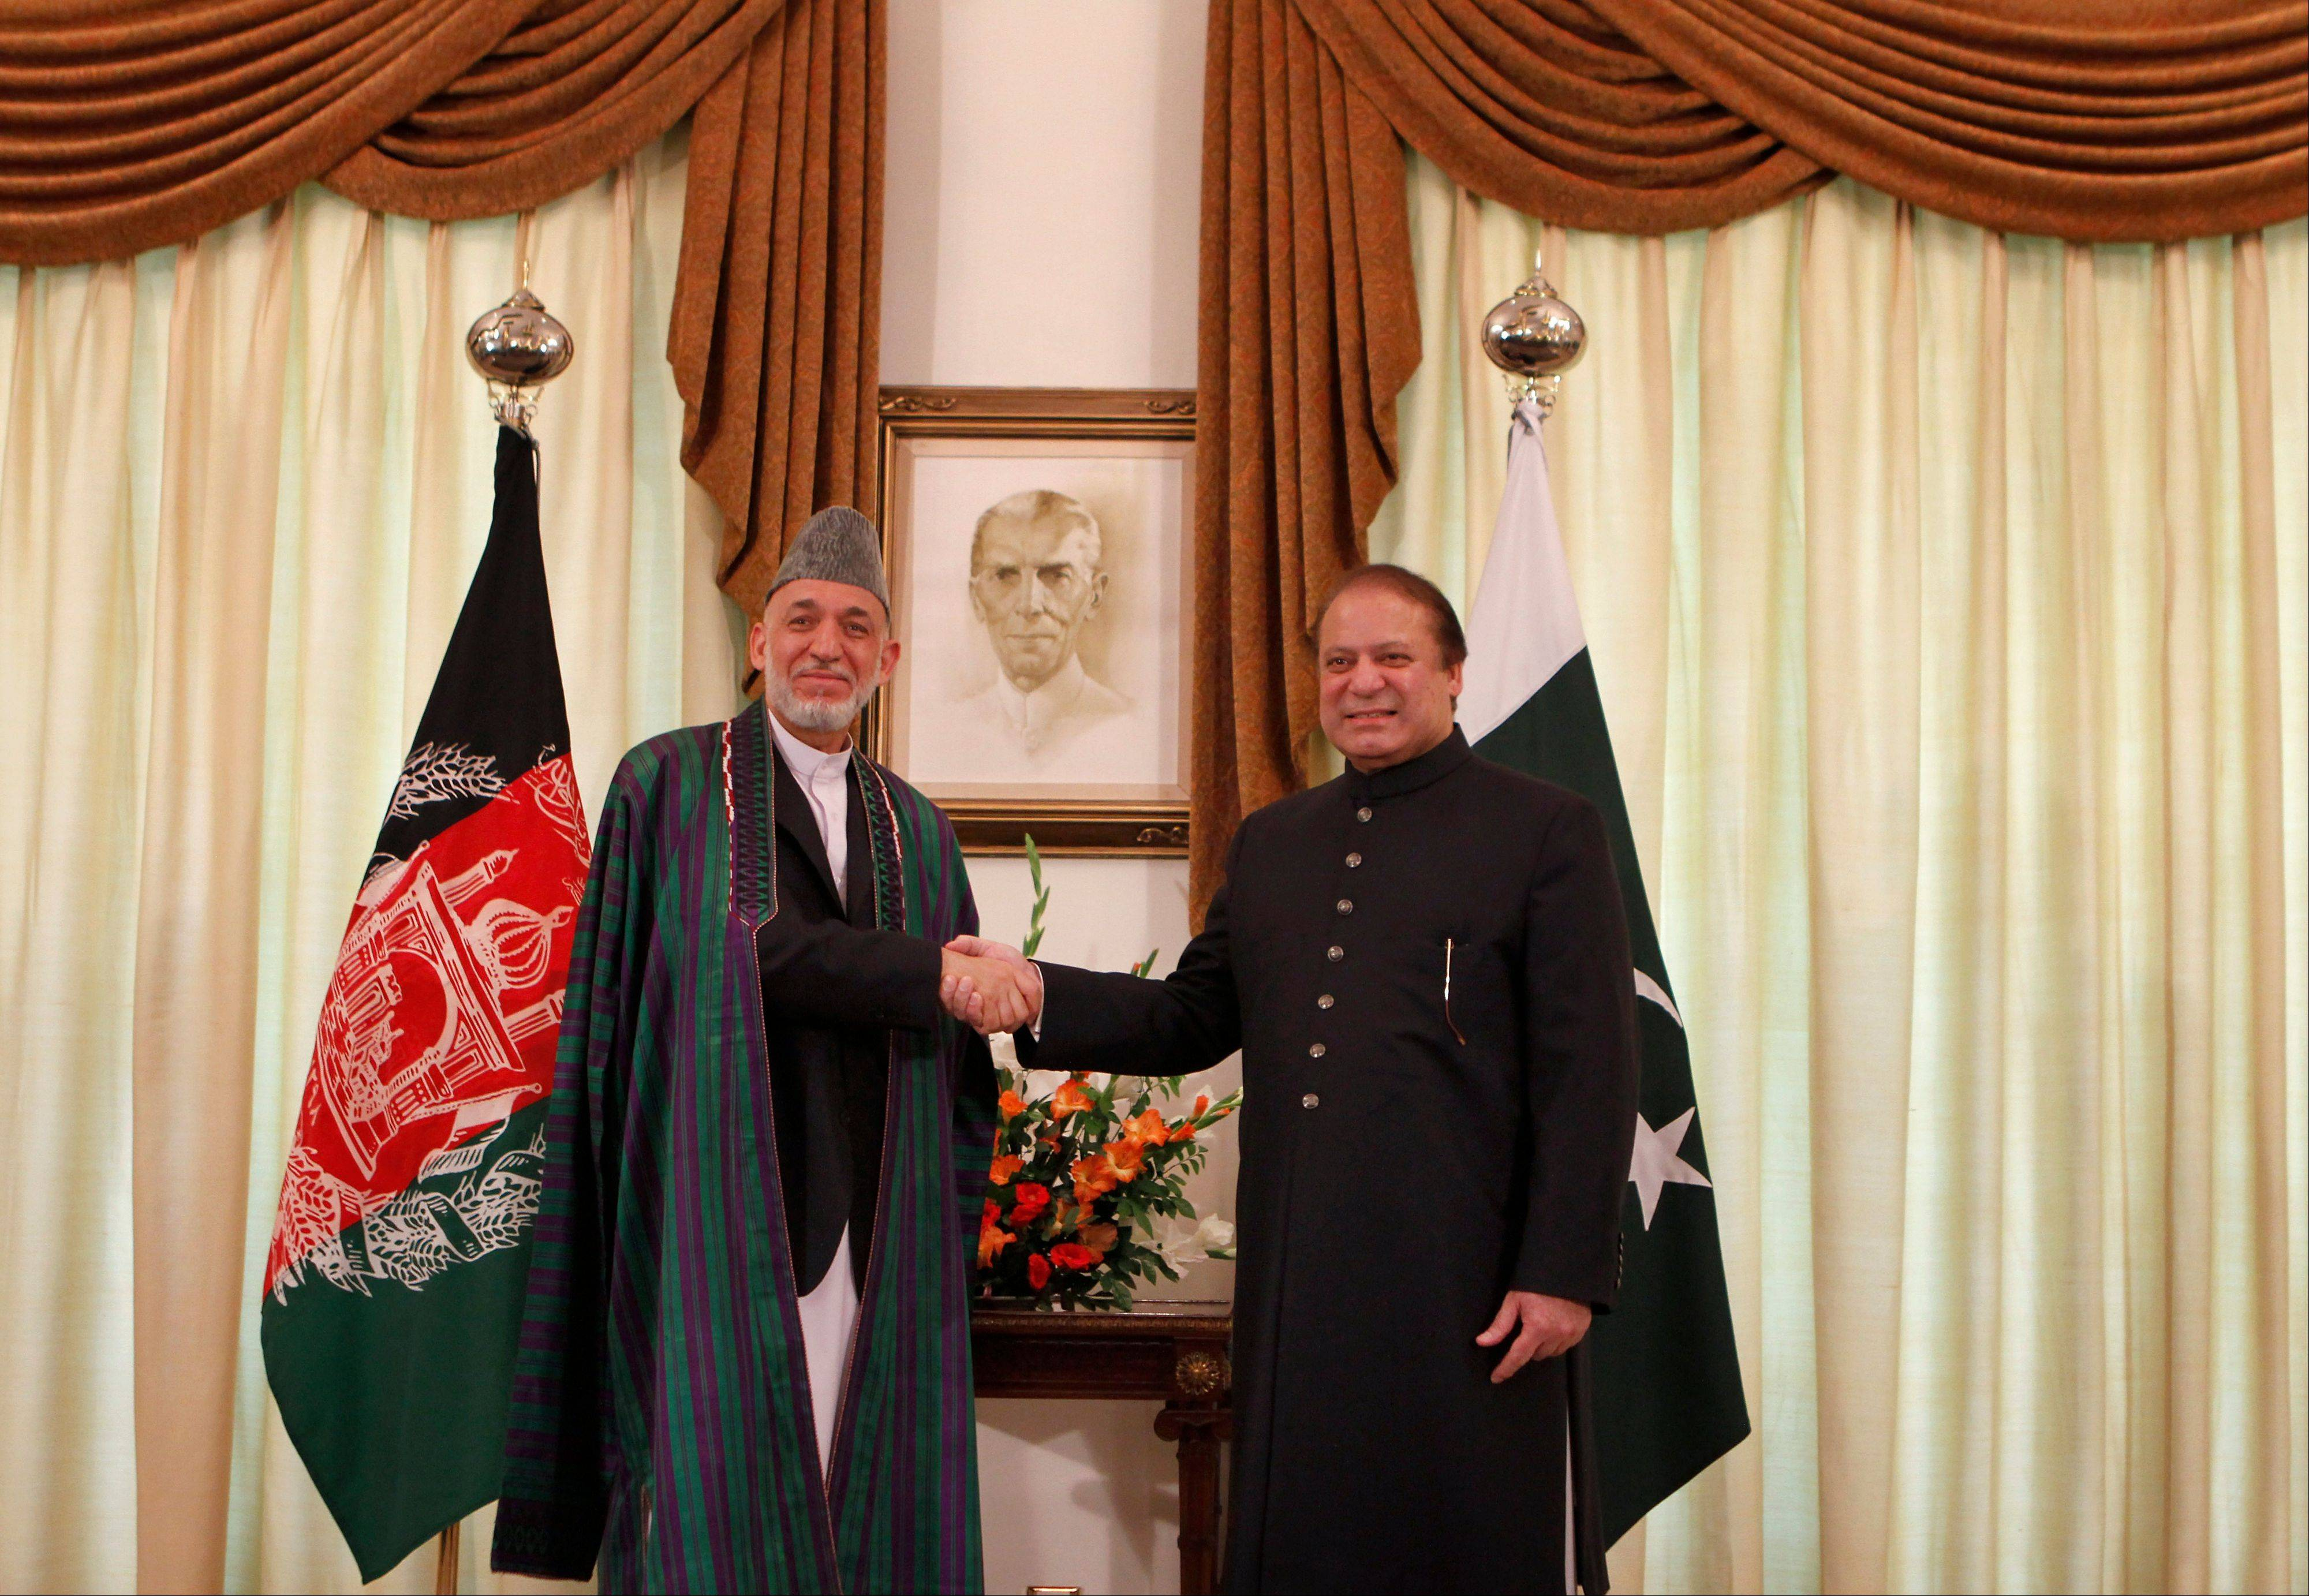 Afghan President Hamid Karzai, left, shakes hand with Pakistani Prime Minister Nawaz Sharif prior to their meeting in Islamabad, Pakistan, Monday. Afghanistan's president urged neighboring Pakistan to facilitate peace talks with the Taliban during a visit to Islamabad on Monday, but expectations were low in both countries that much progress would be made in jump-starting negotiations.